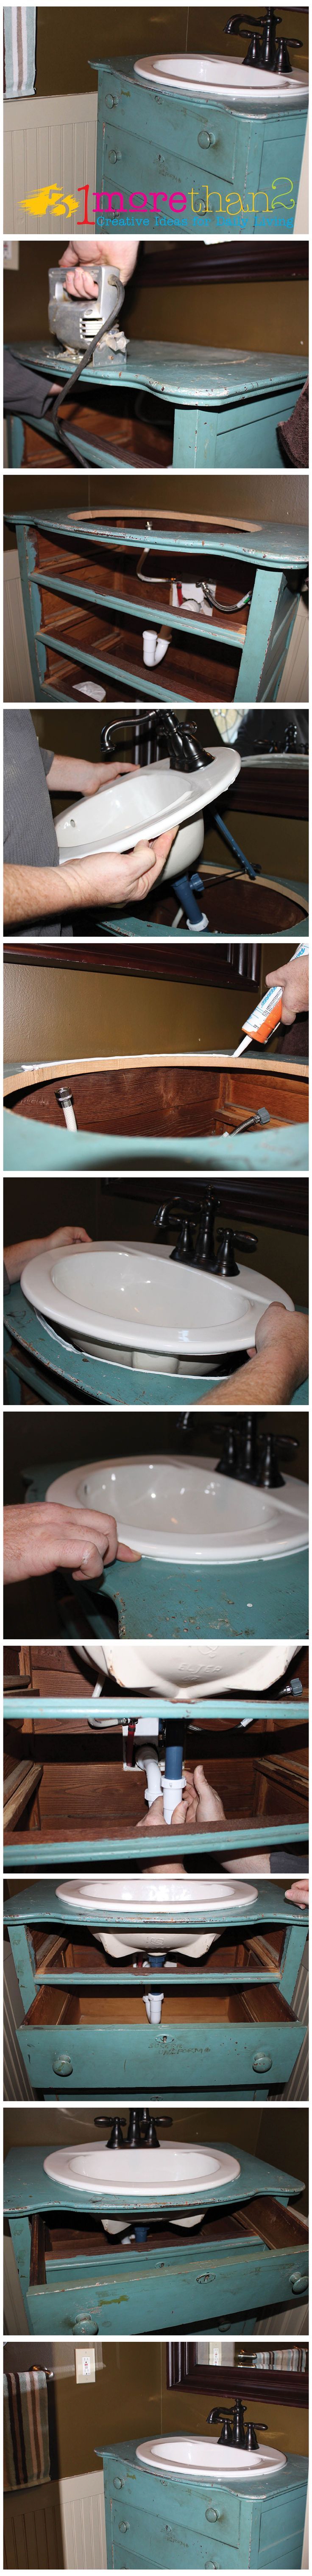 NEAT!!  Even I could do this! :-D  ---sink in old dresser